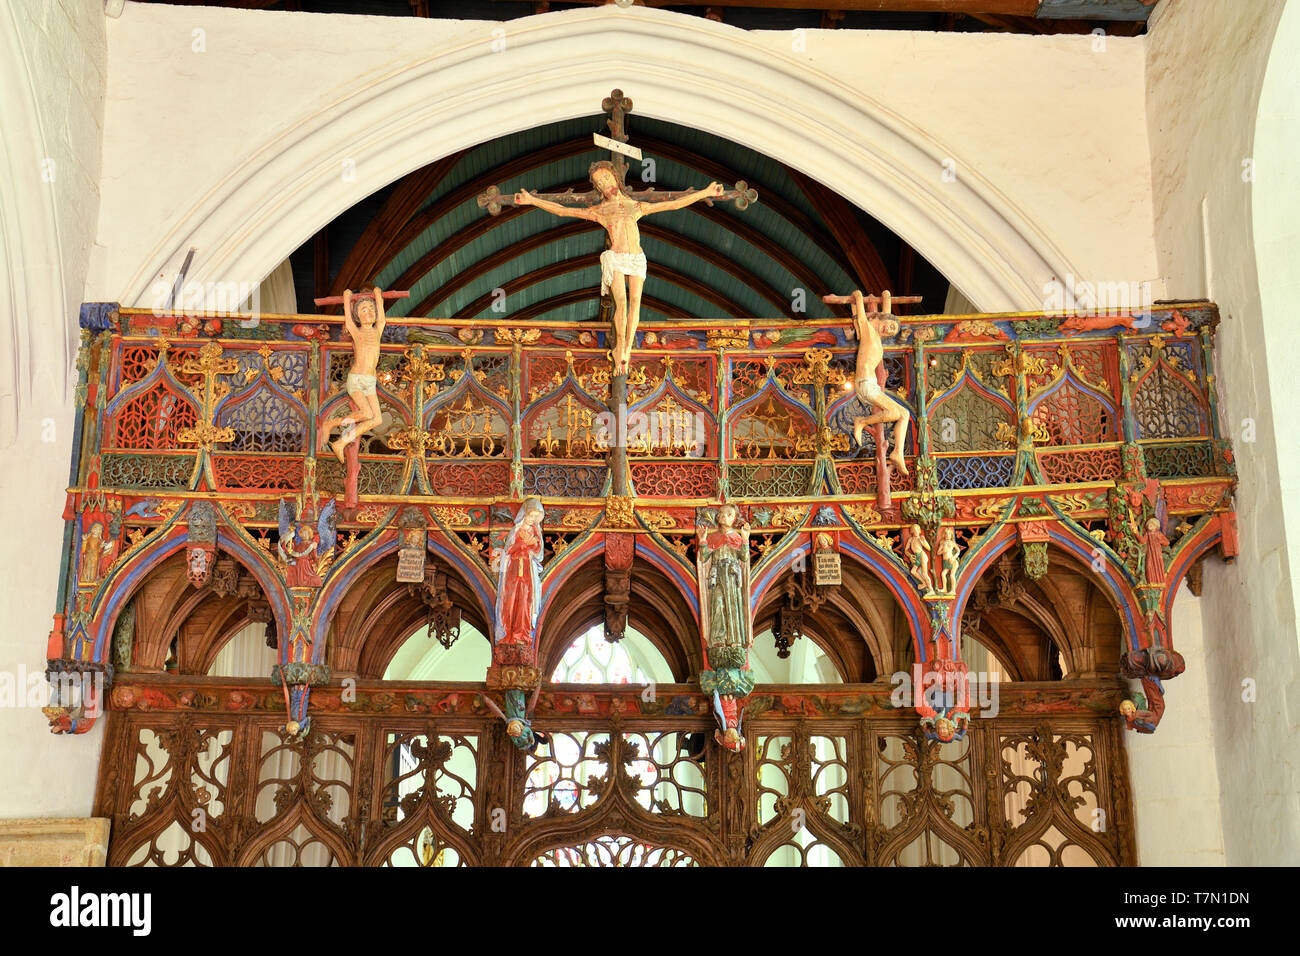 France, Morbihan, stop on the Way of St James, Le Faouet, St Fiacre chapel 15th century, polychromatic wooden jubee, seen as one of the most beautiful of France Stock Photo